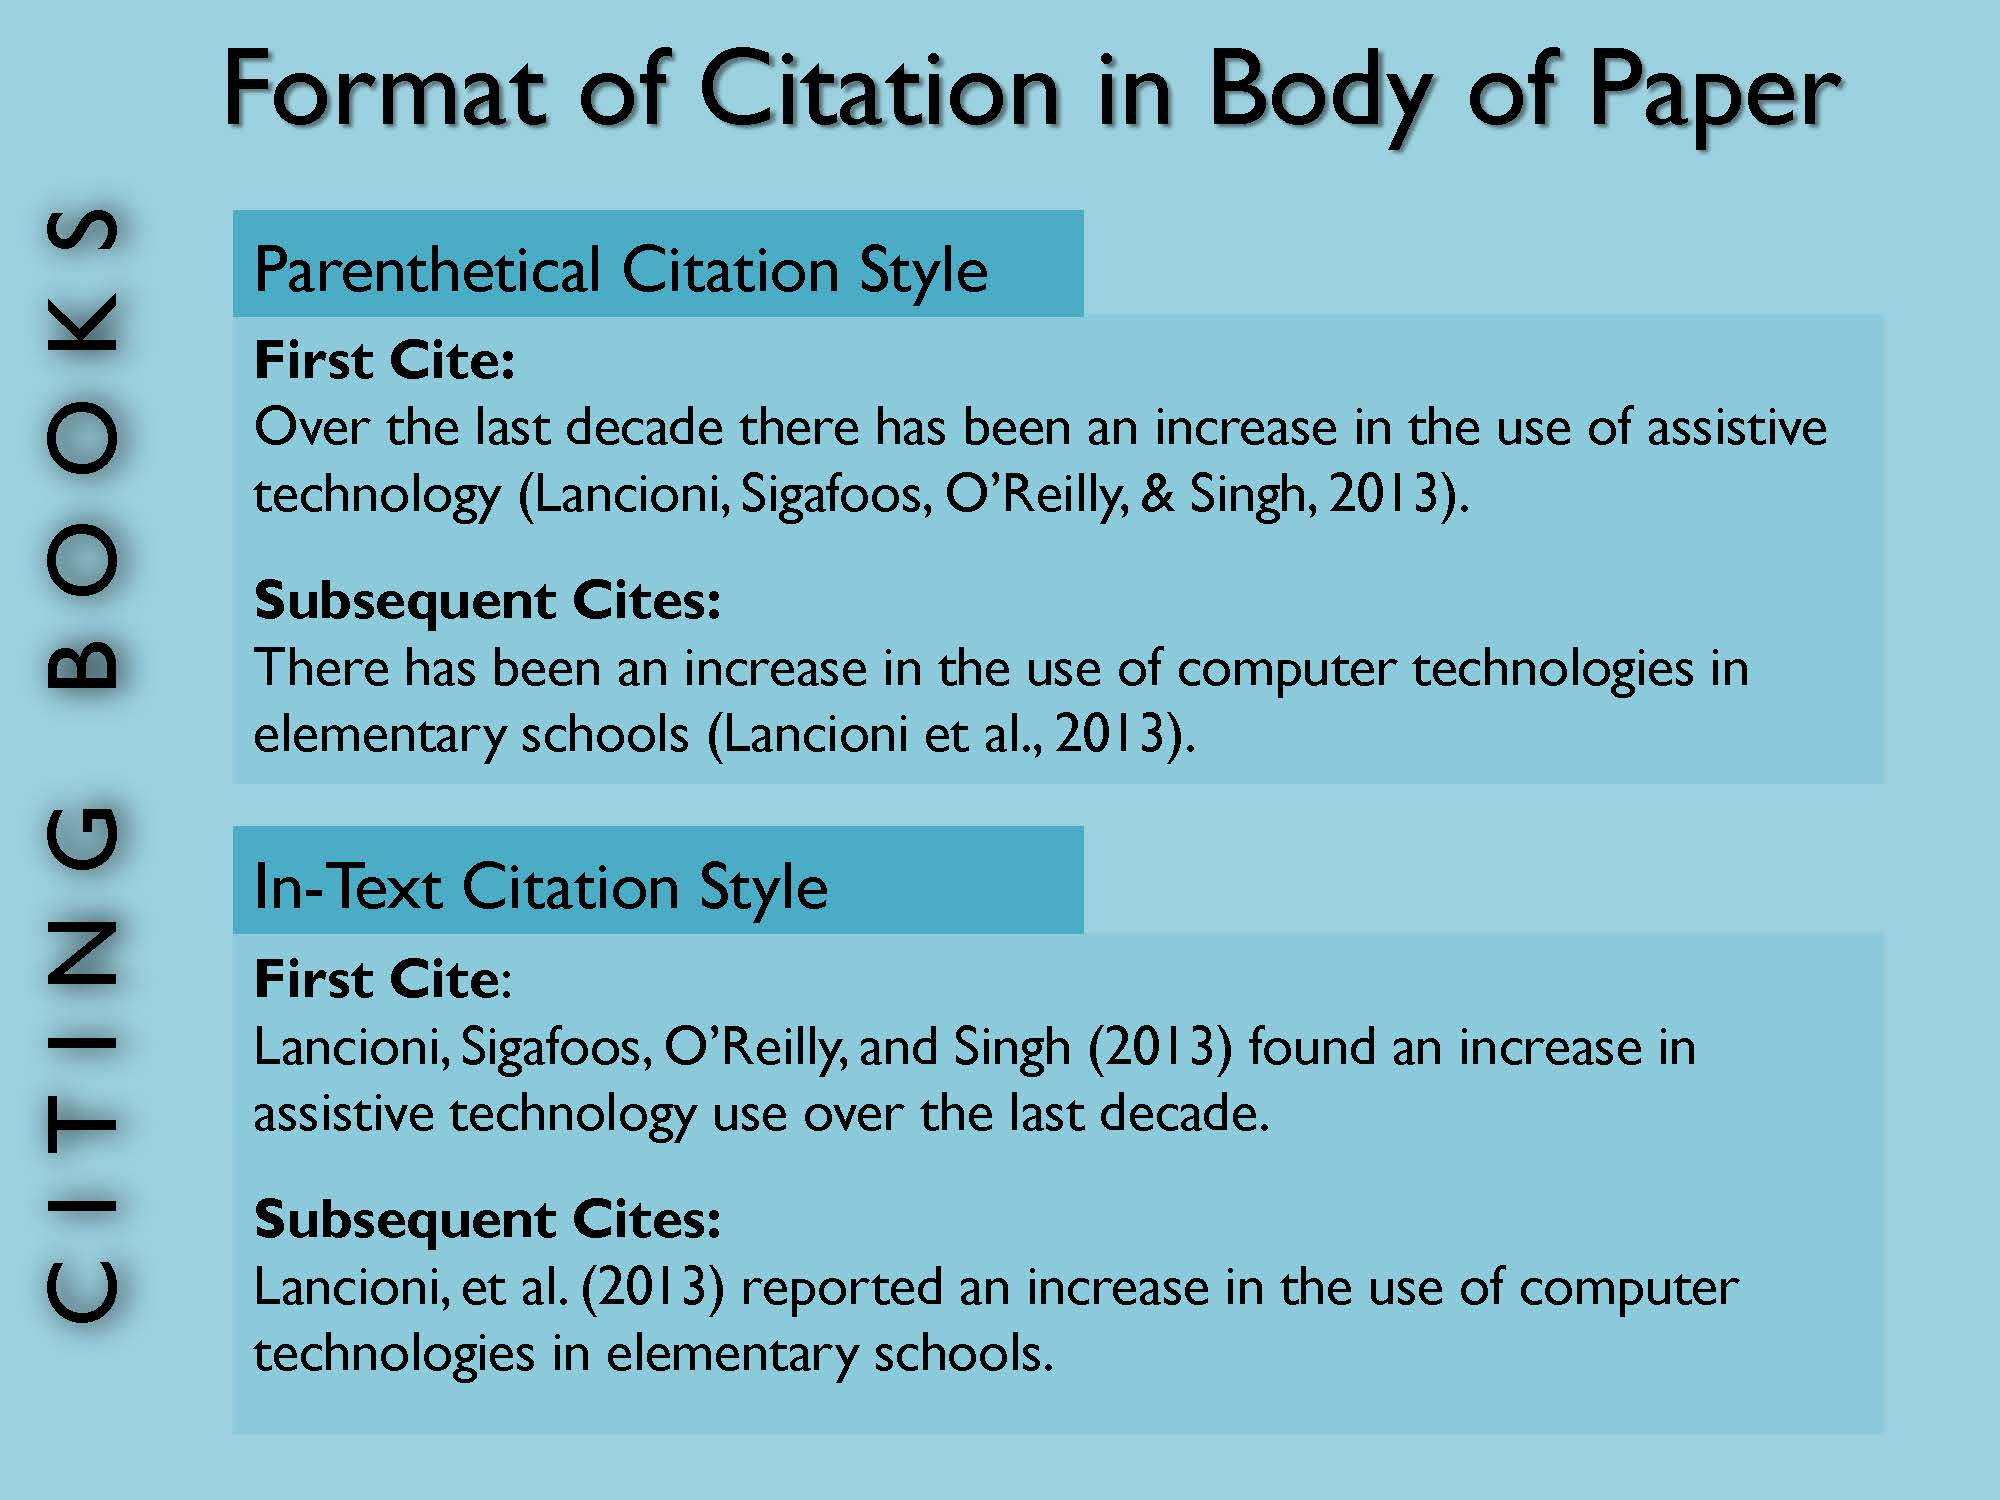 citation on essays Cite essay in text cite essay from textbook my ten year plan essays advertisement essay thesis help essay about arbitration act i am listening to istanbul poem.